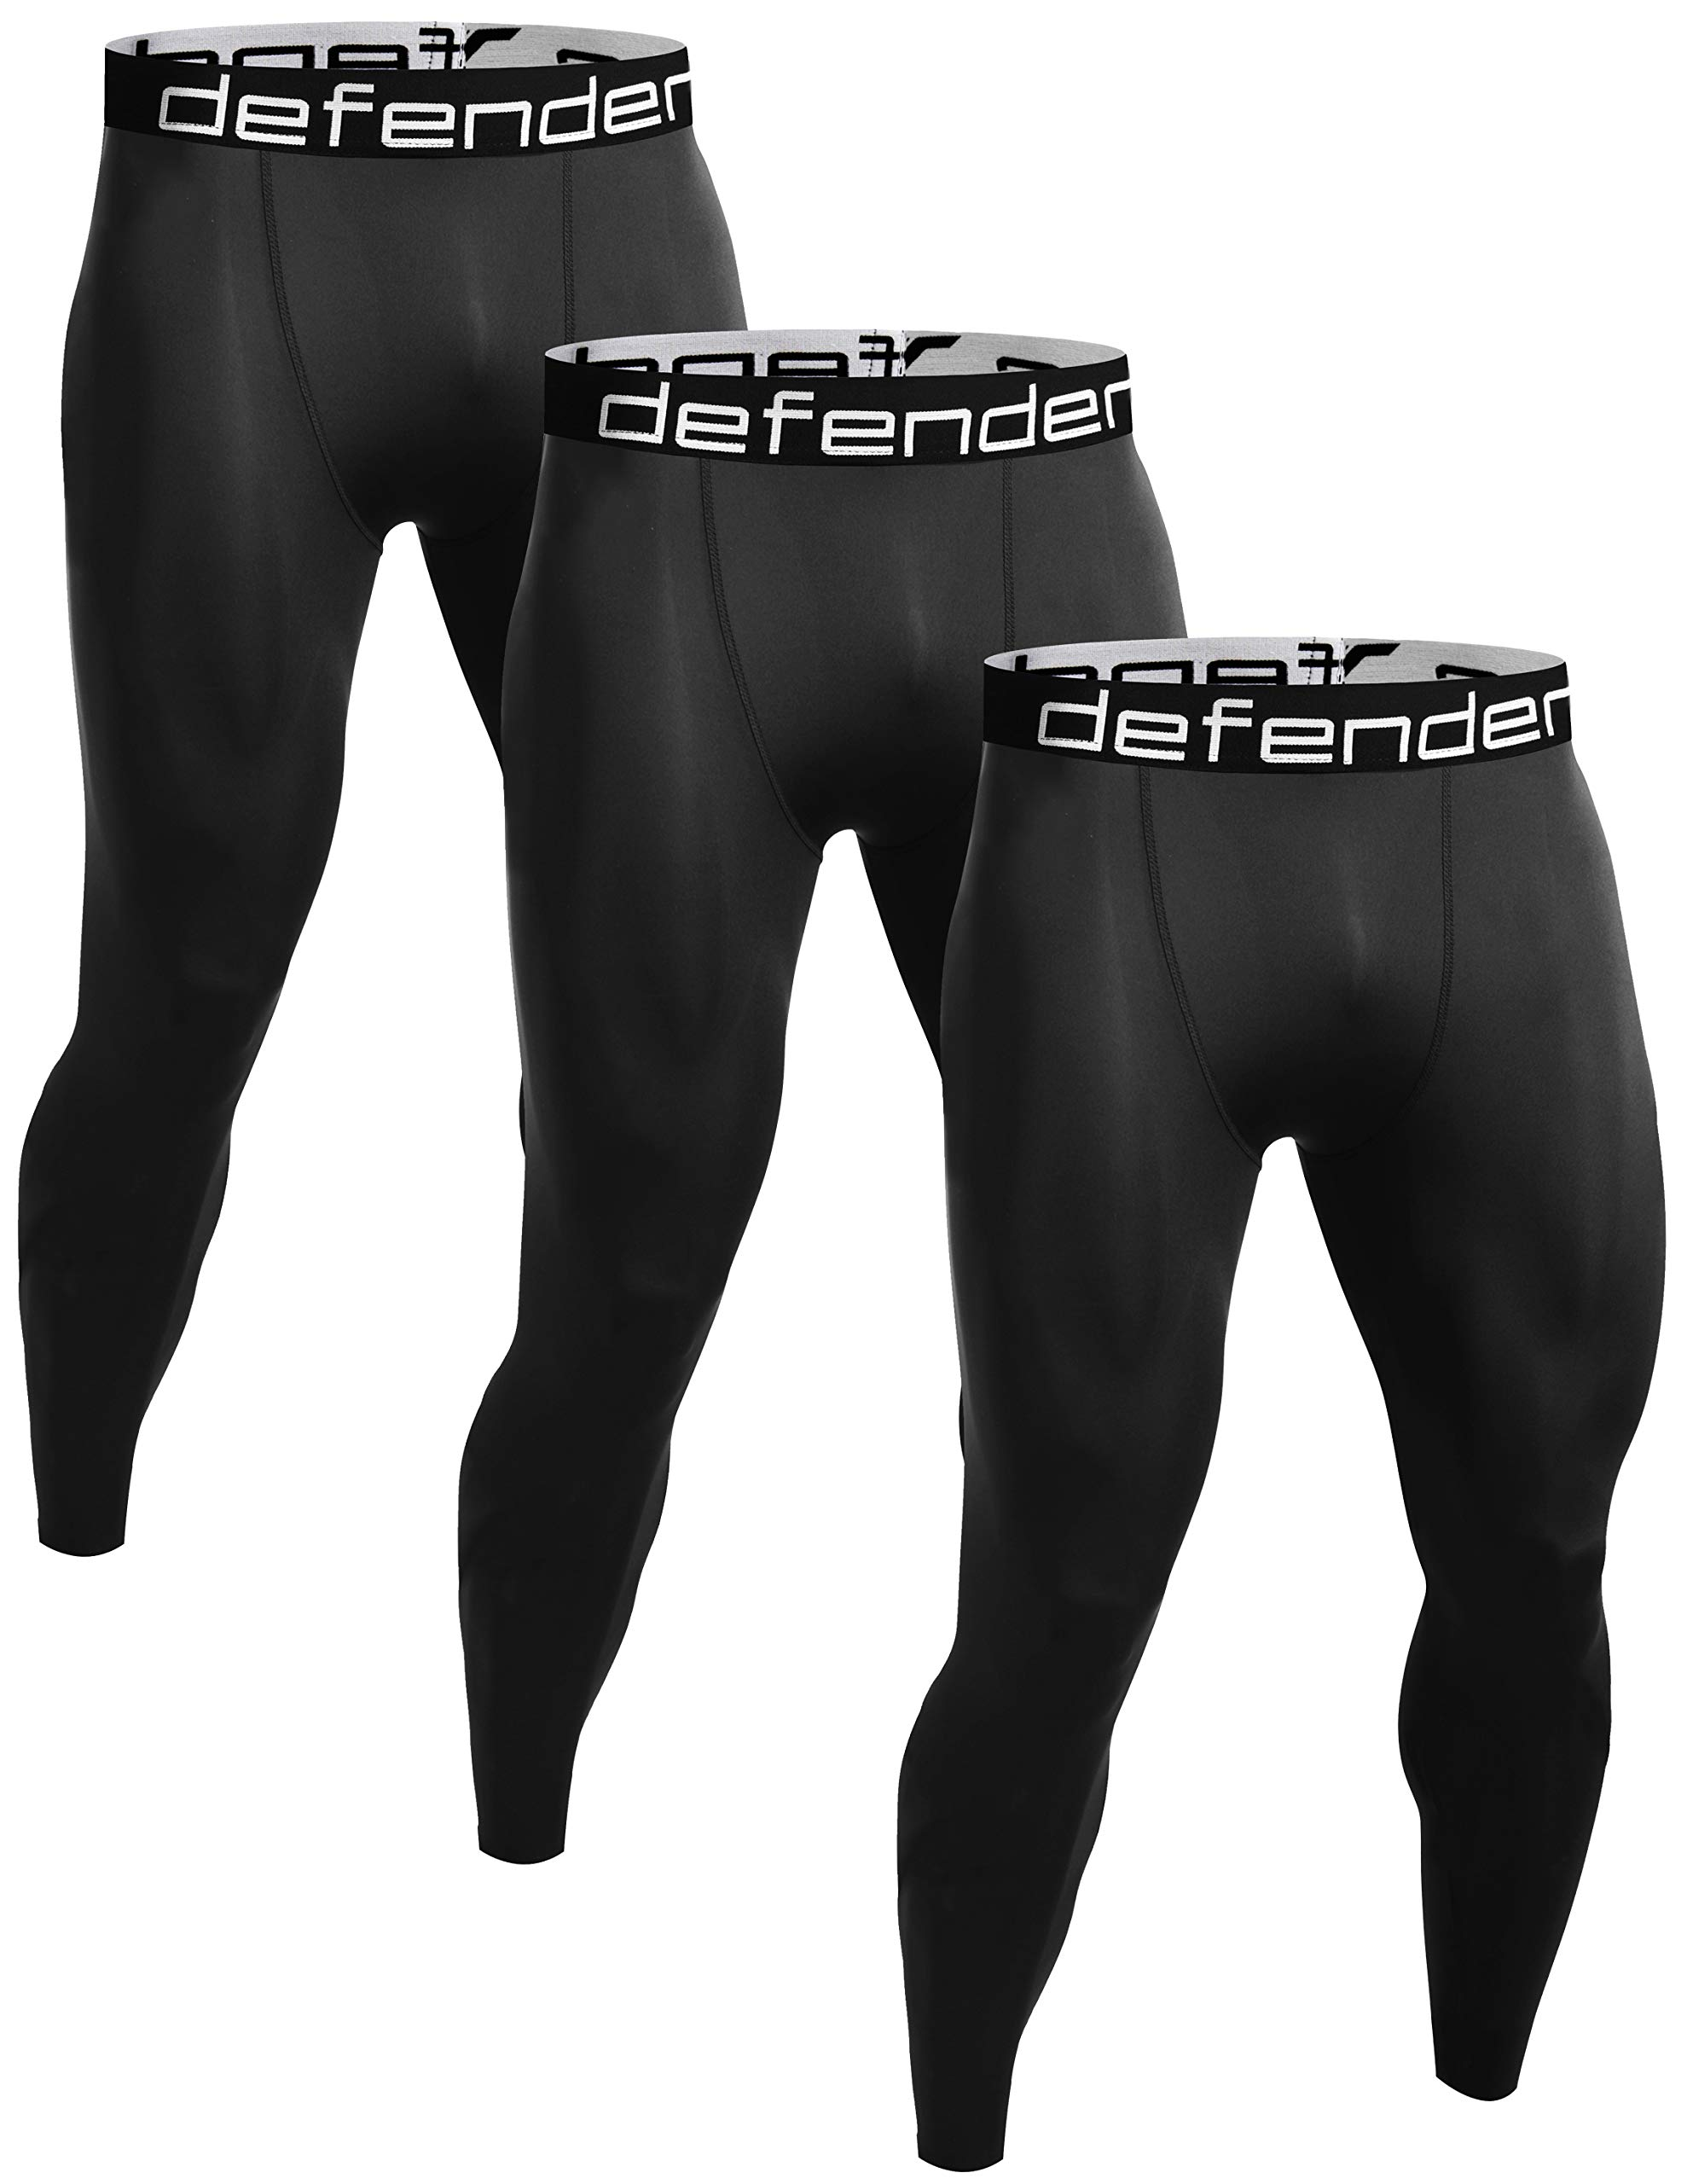 innovative design c5abc 24a48 Defender Men s Compression Baselayer Pants Legging Shorts Shirts Tights  Running